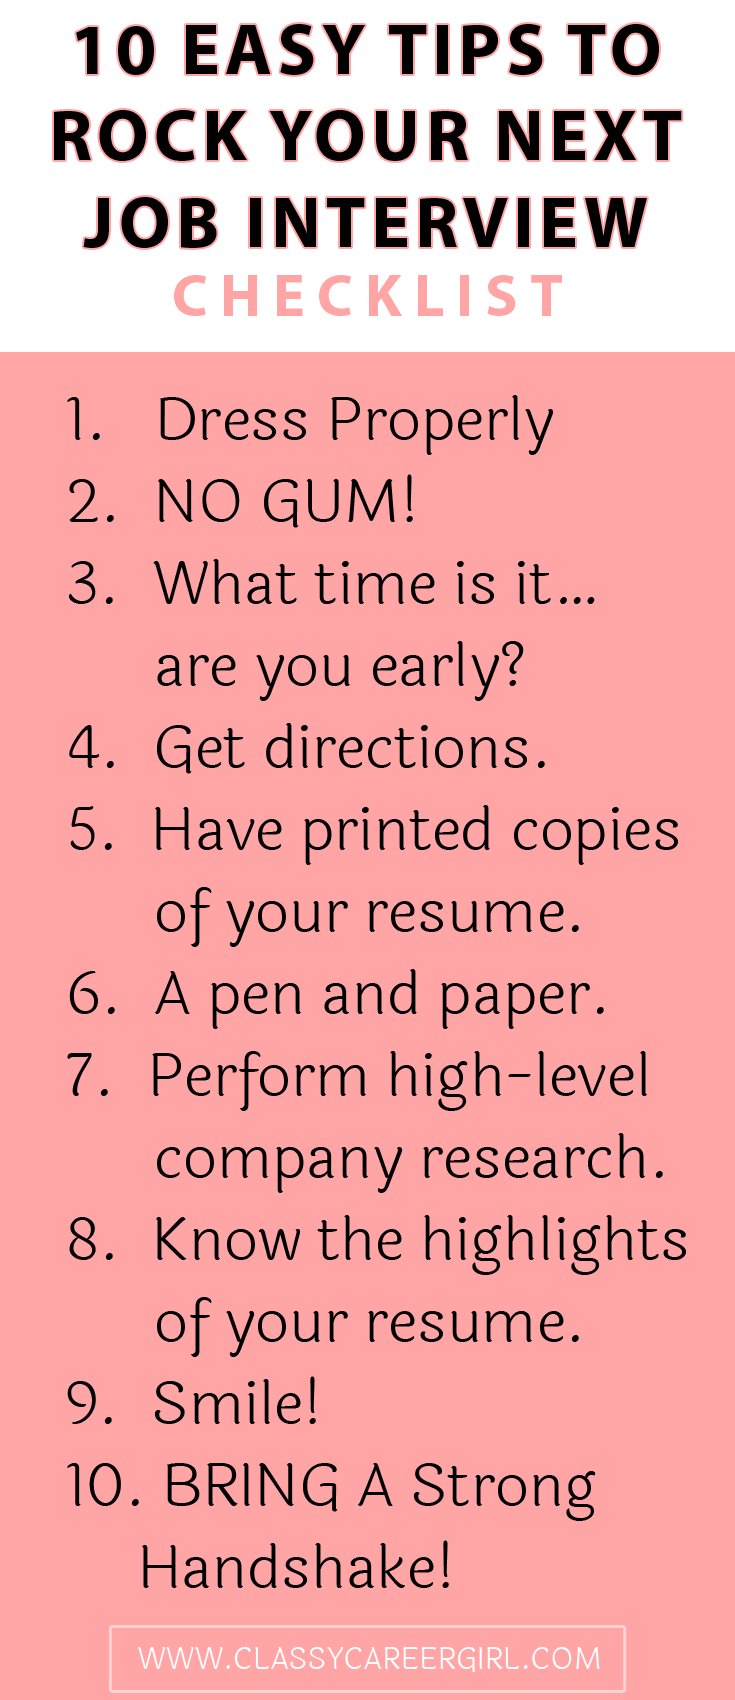 a recruiter s top 5 tips for acing your prescreen interview checklist 10 easy tips to rock your next job interview